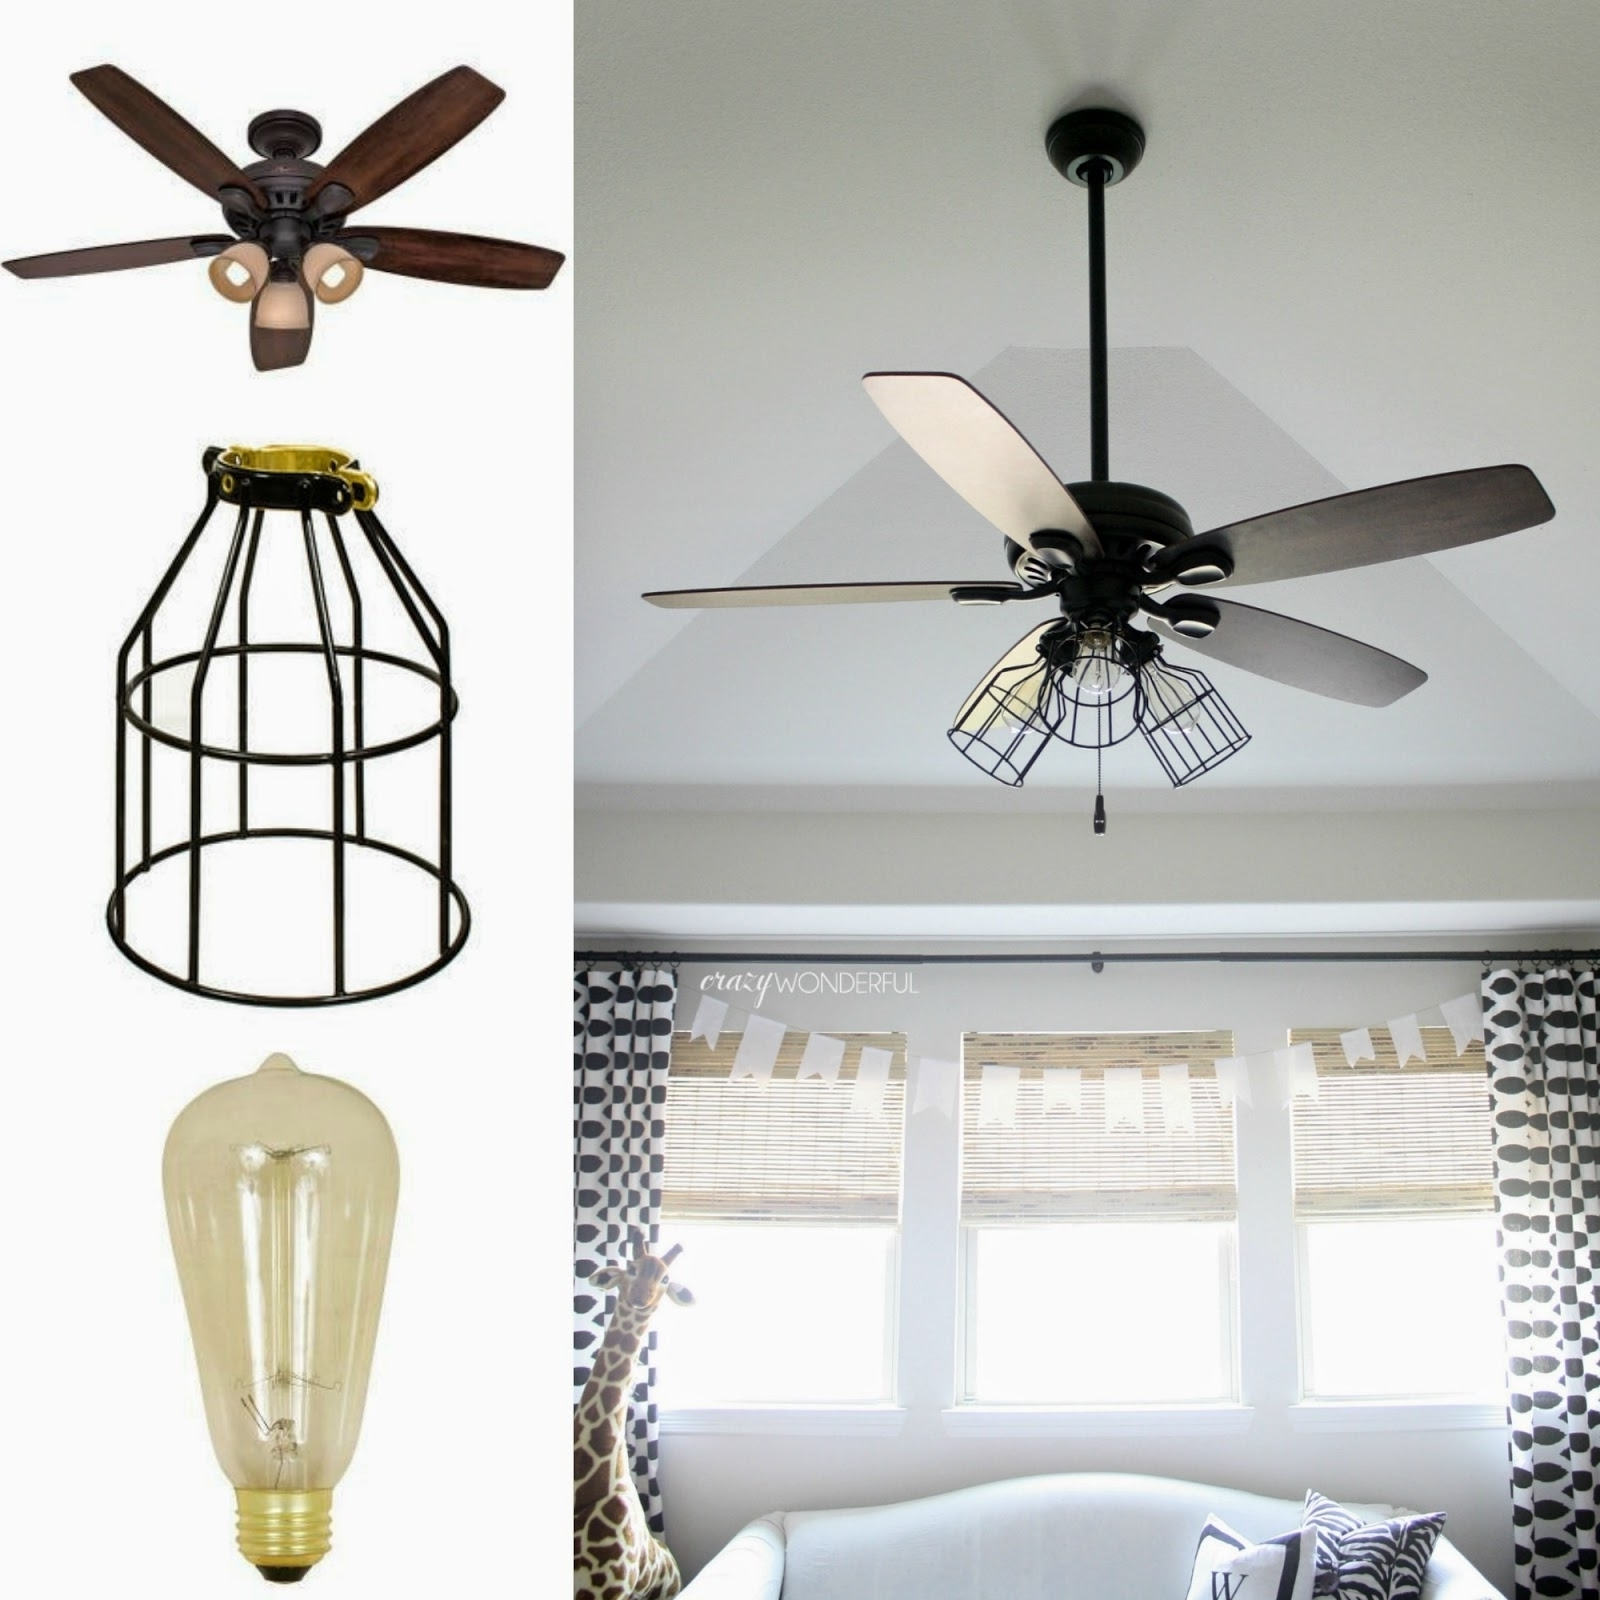 2019 Outdoor Ceiling Lights At Menards Pertaining To Interior: Fill Your Home With Wonderful Menards Ceiling Fans With (View 1 of 20)